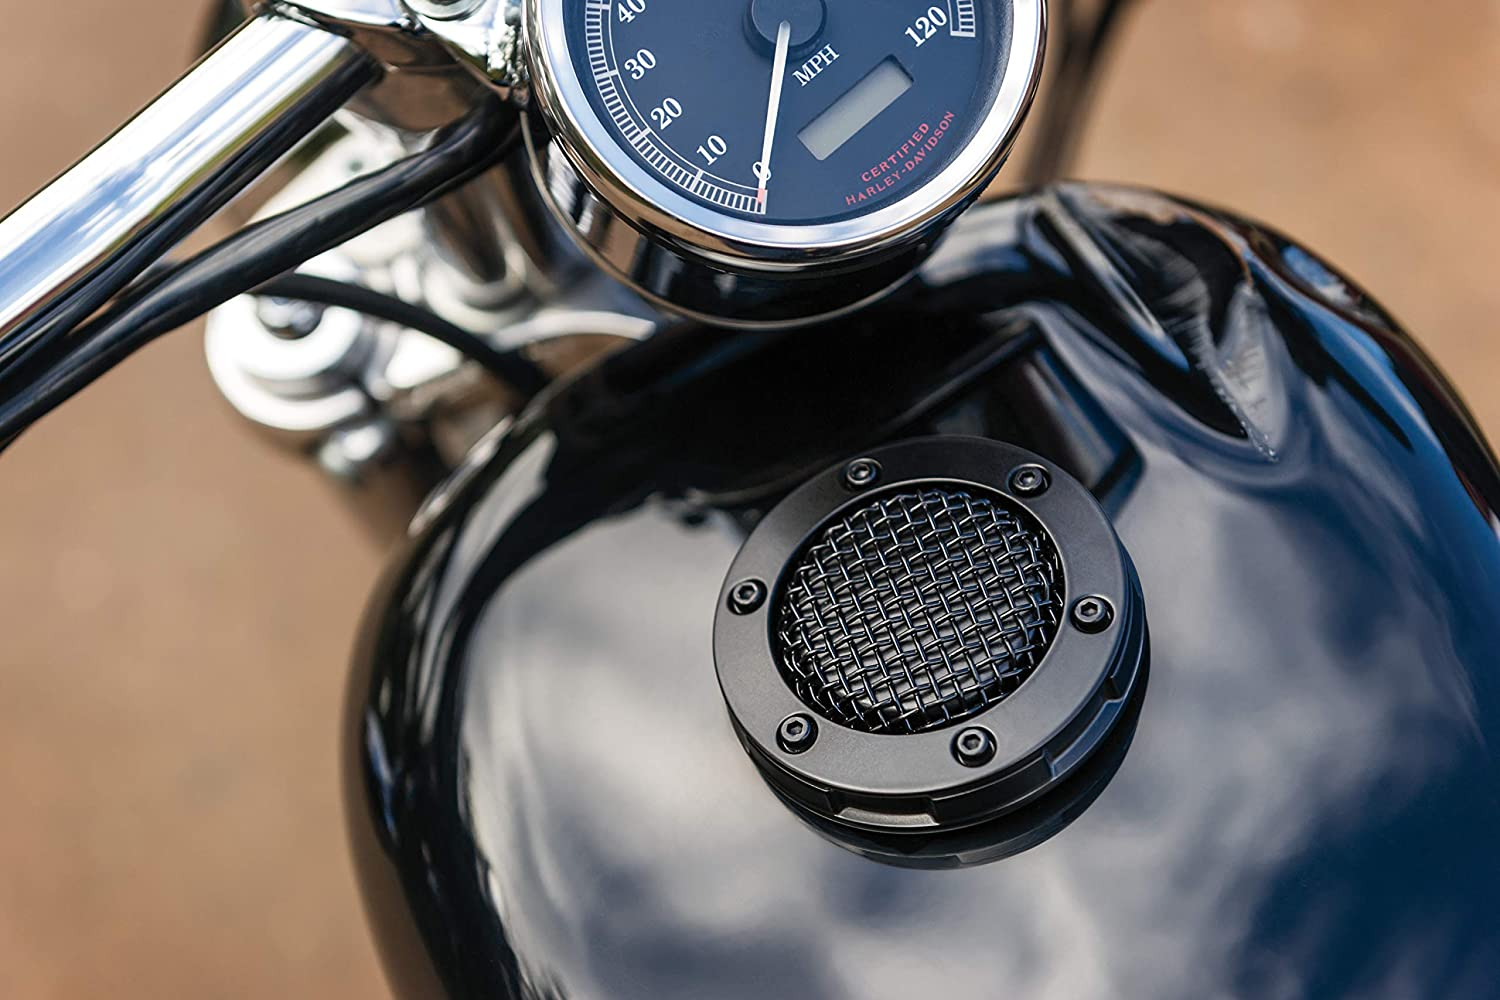 Kuryakyn 6549 Mesh Style Low-Profile Vented Fuel Tank/Gas Cap with Right-Hand Threads for 1982-2019 Harley-Davidson Motorcycles with Screw Tanks, Satin Black